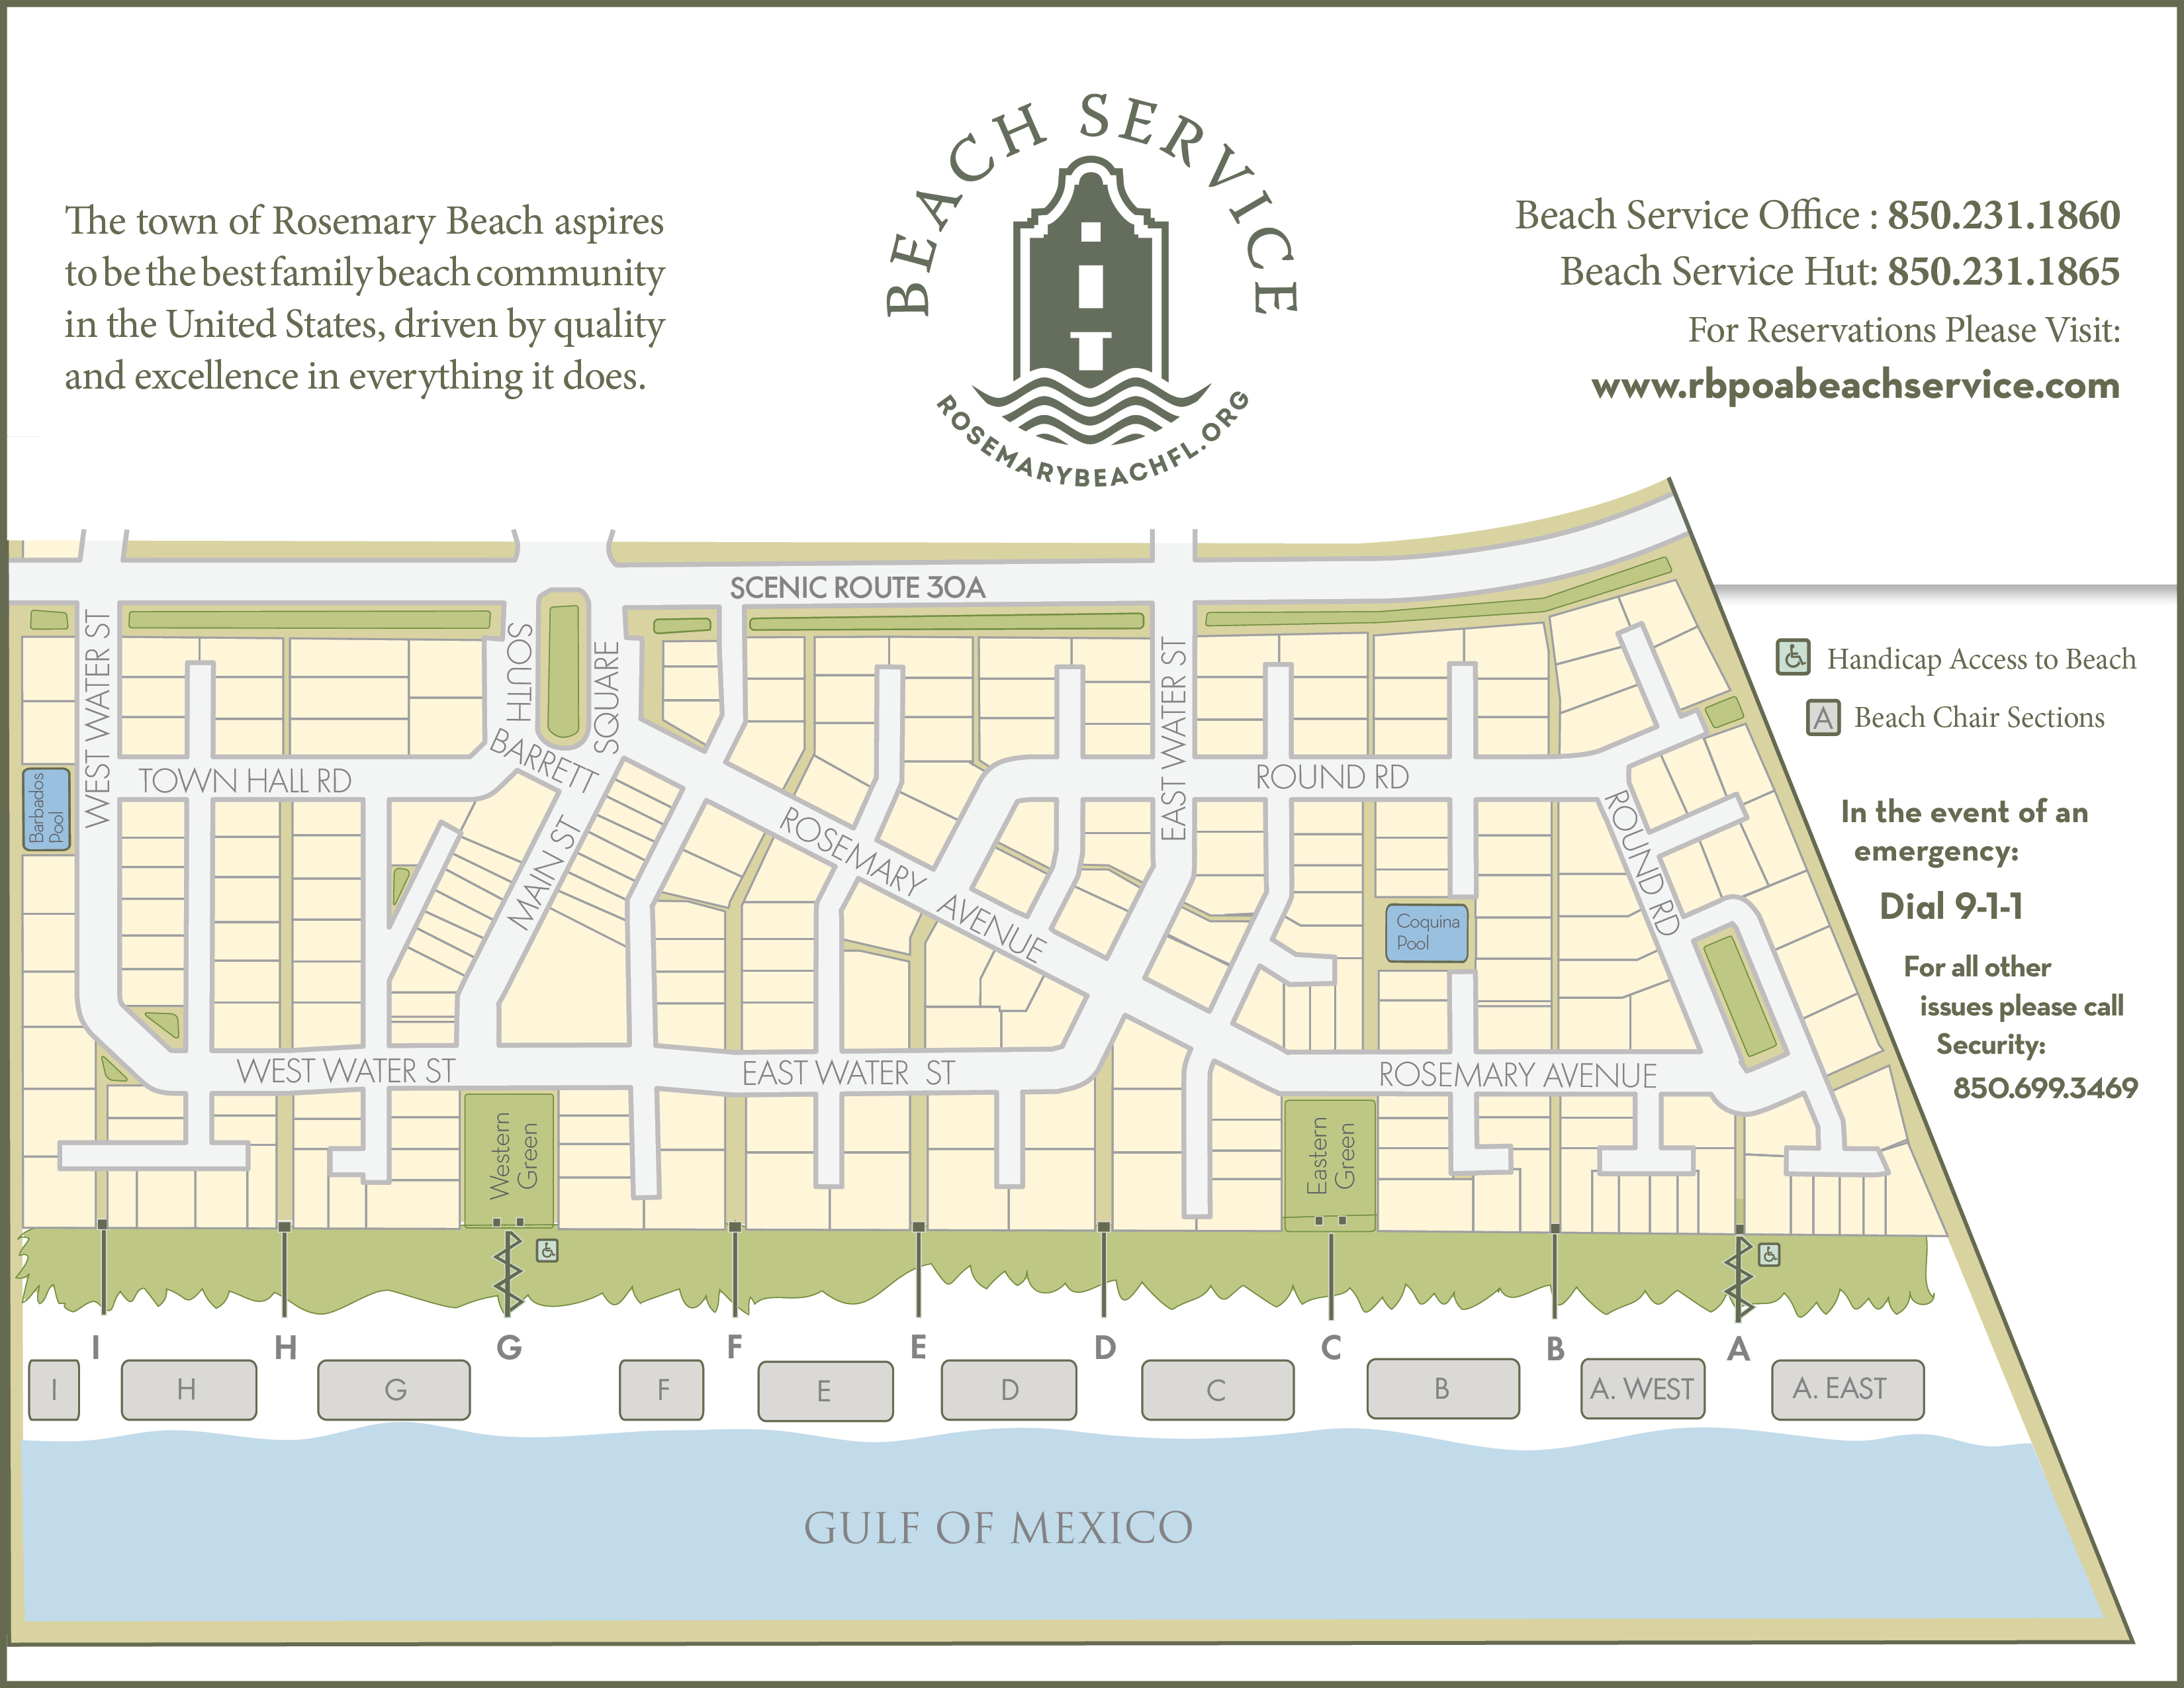 Rosemary Beach Walkovers | Rosemary Beach Service on southport map, palm beach gardens map, port orange map, tops'l resort map, dune allen beach map, port richey map, destiny by the sea map, verona beach new york map, sea crest beach hotel map, sandestin map, pompano beach fl map, tidewater map, destin map, blue mountain beach map, apollo beach fl map, fernandina beach fl map, steinhatchee map, callaway map, seaside map, daybreak map,